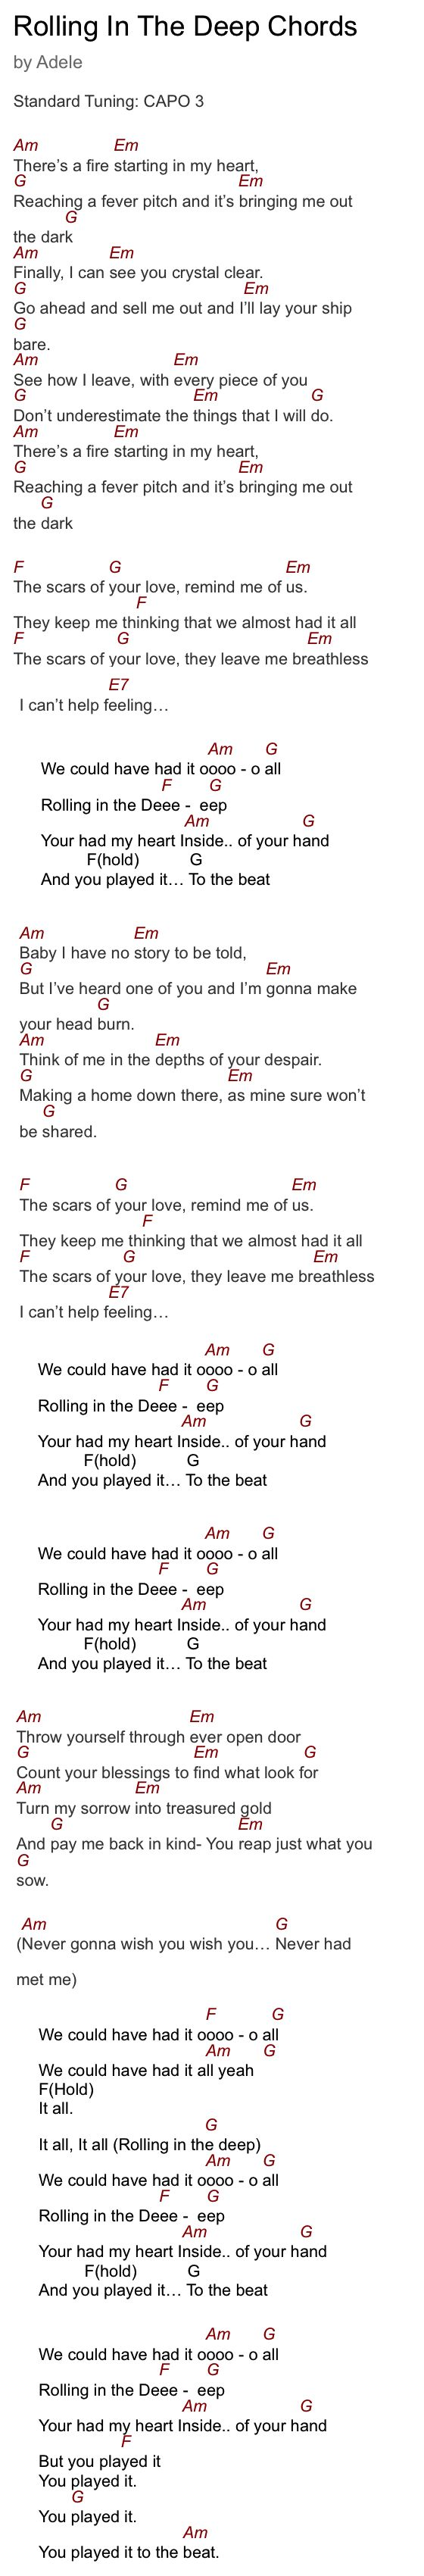 Adeles Rolling in the Deep Guitar Chords CAPO 3 Verse 1